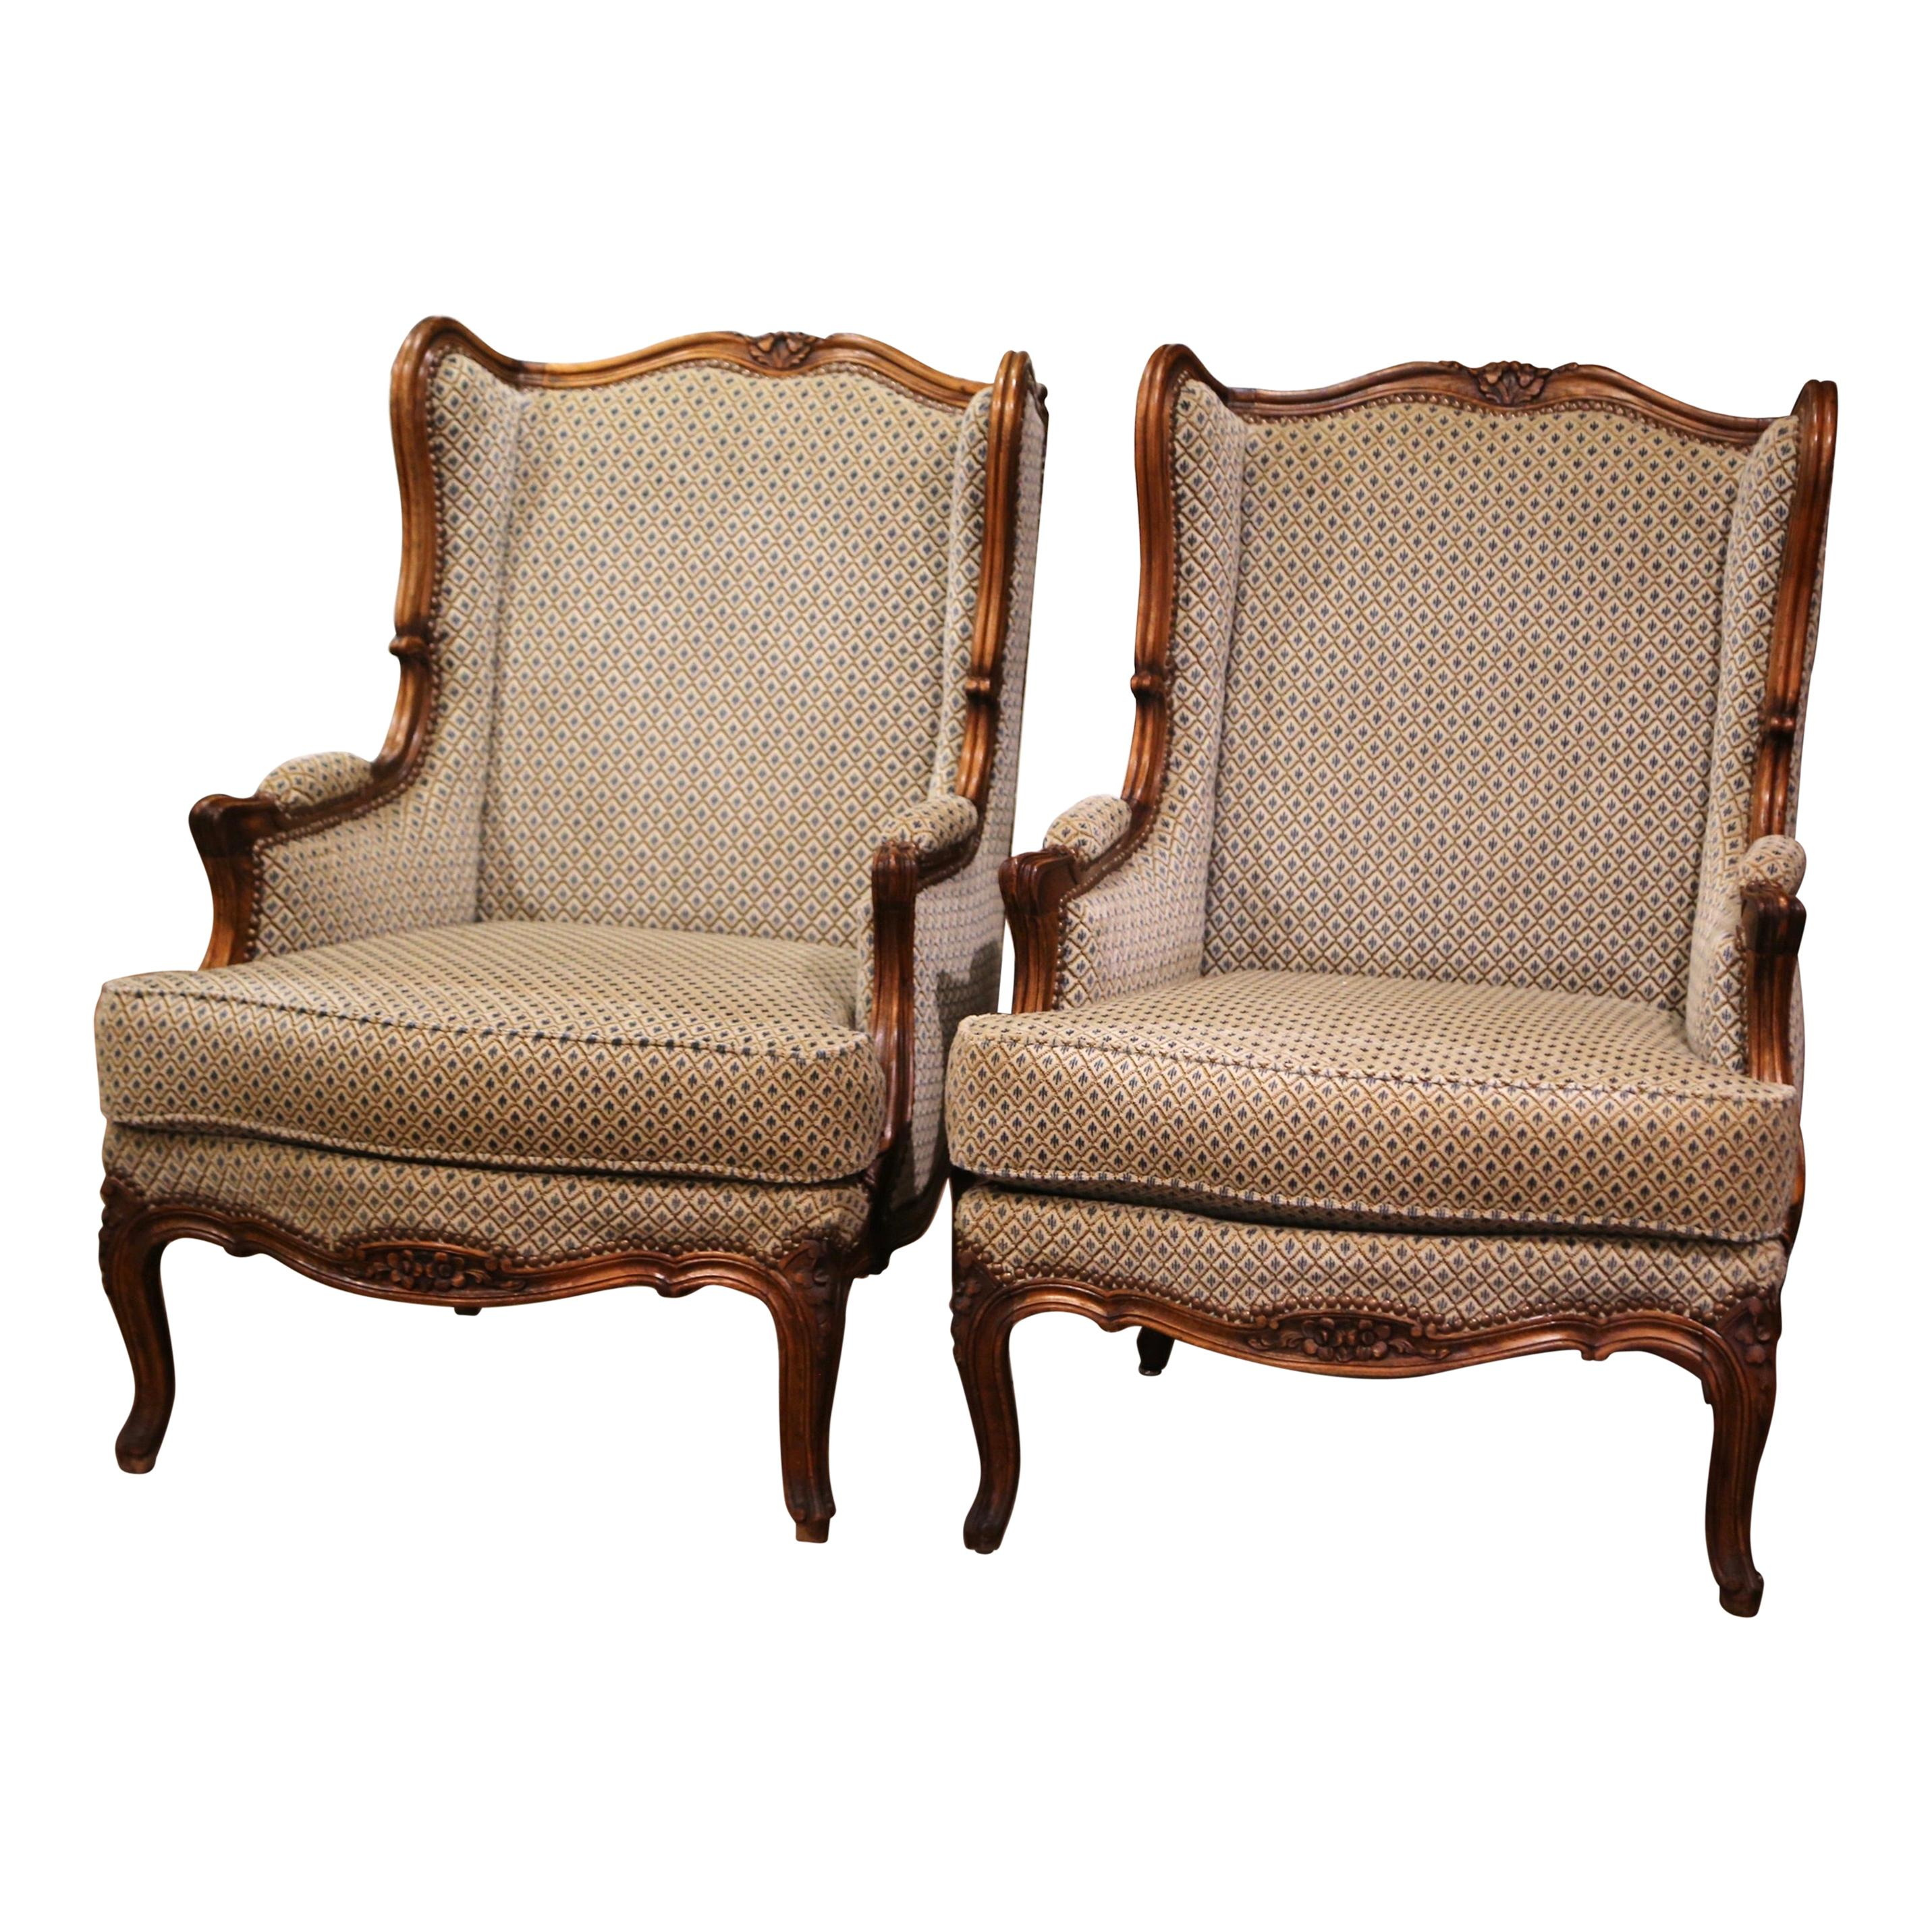 Pair of Early 20th Century Louis XV Provencal Carved Walnut Wing Back Bergeres